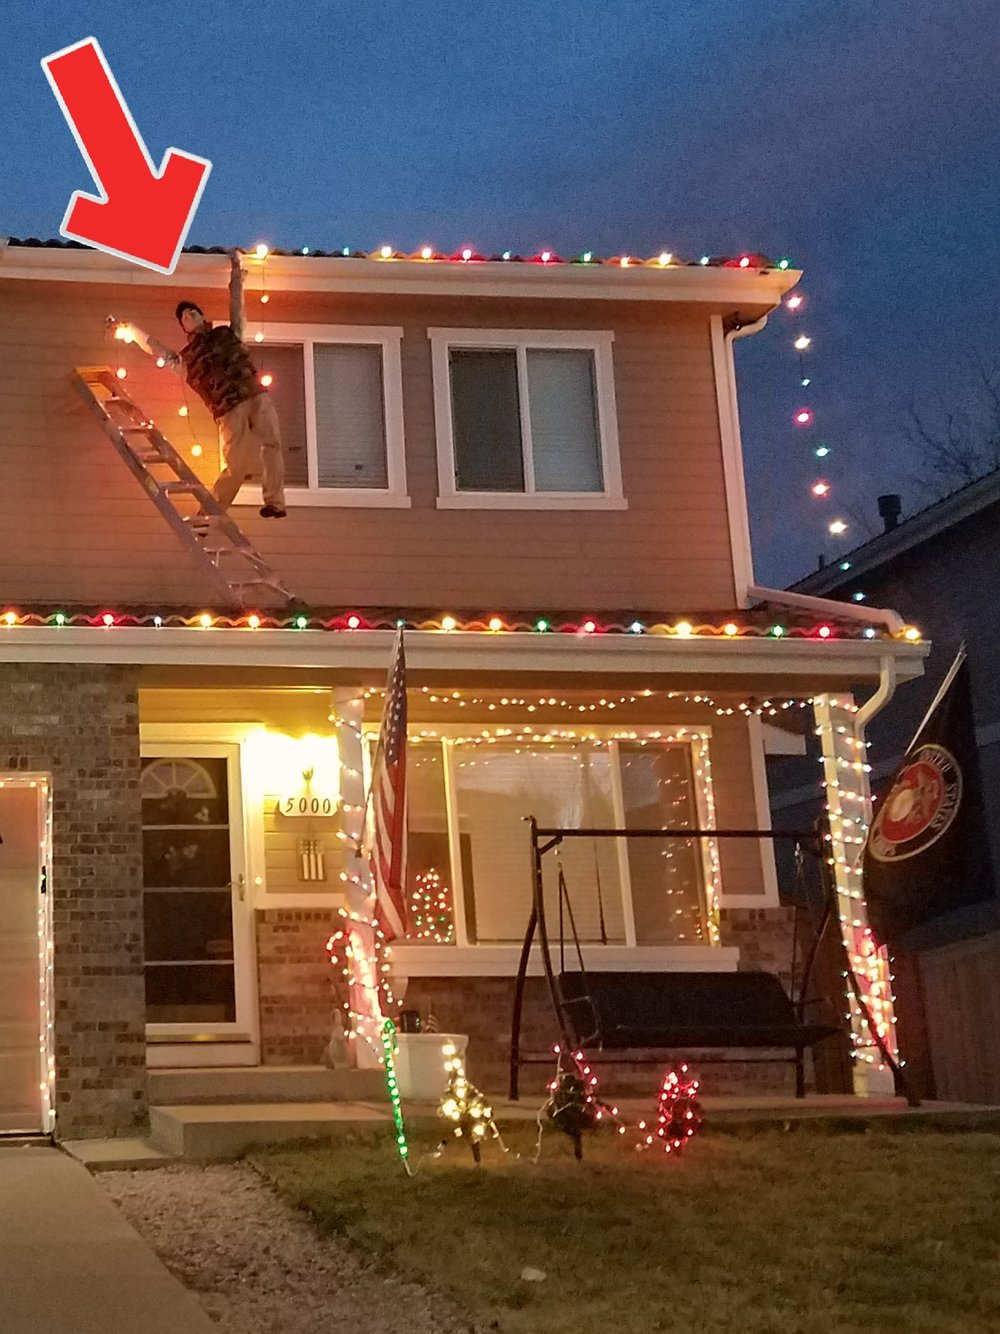 Don't be a dummy like this guy when installing Christmas lights. Also, use caution on who you let near your concrete tile roof. I've seen lots of damage over the years from Christmas light installers.